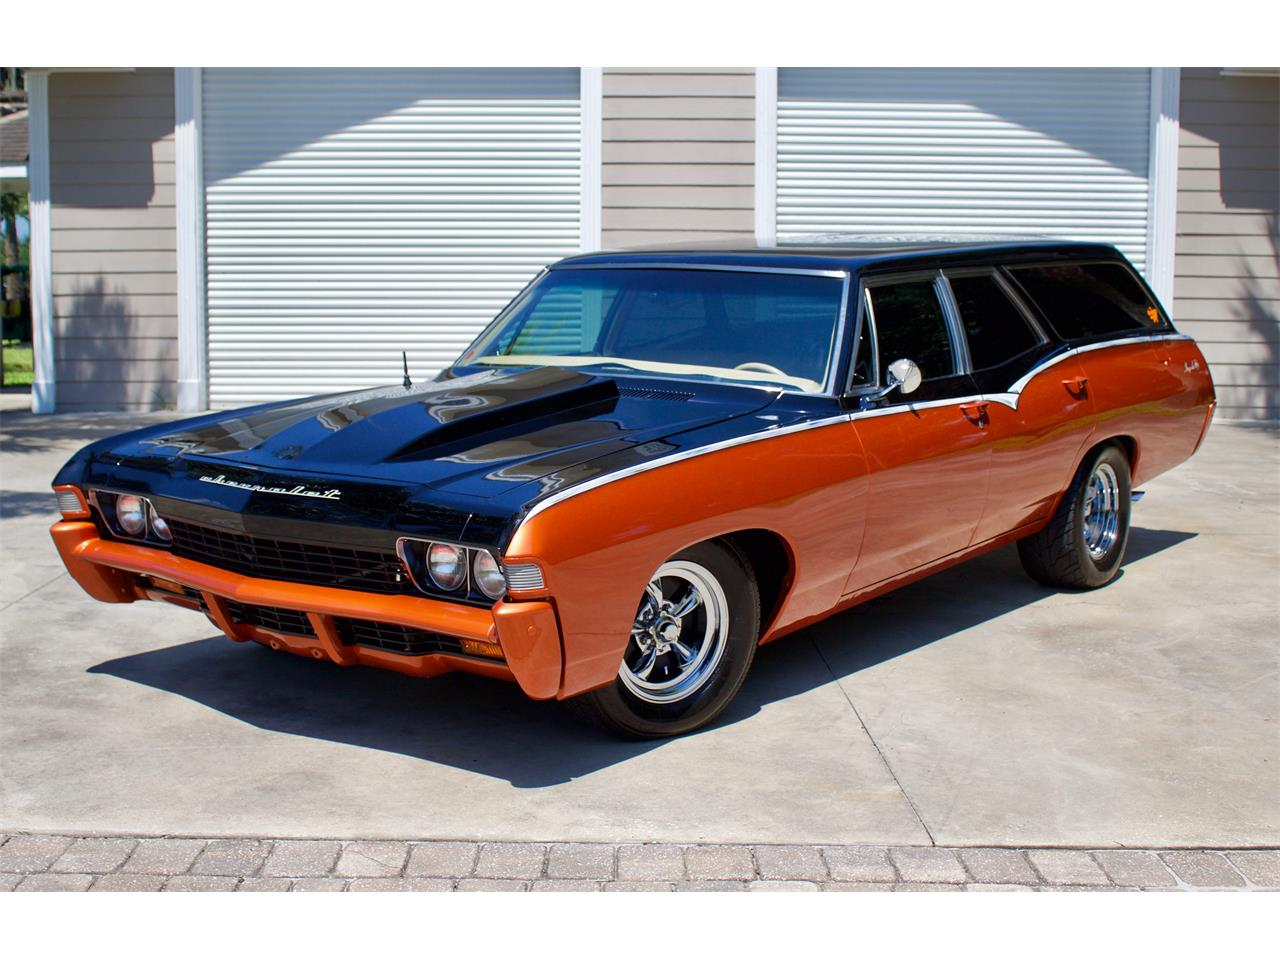 Large Picture of Classic 1968 Impala SS427 - $44,950.00 - QYQC